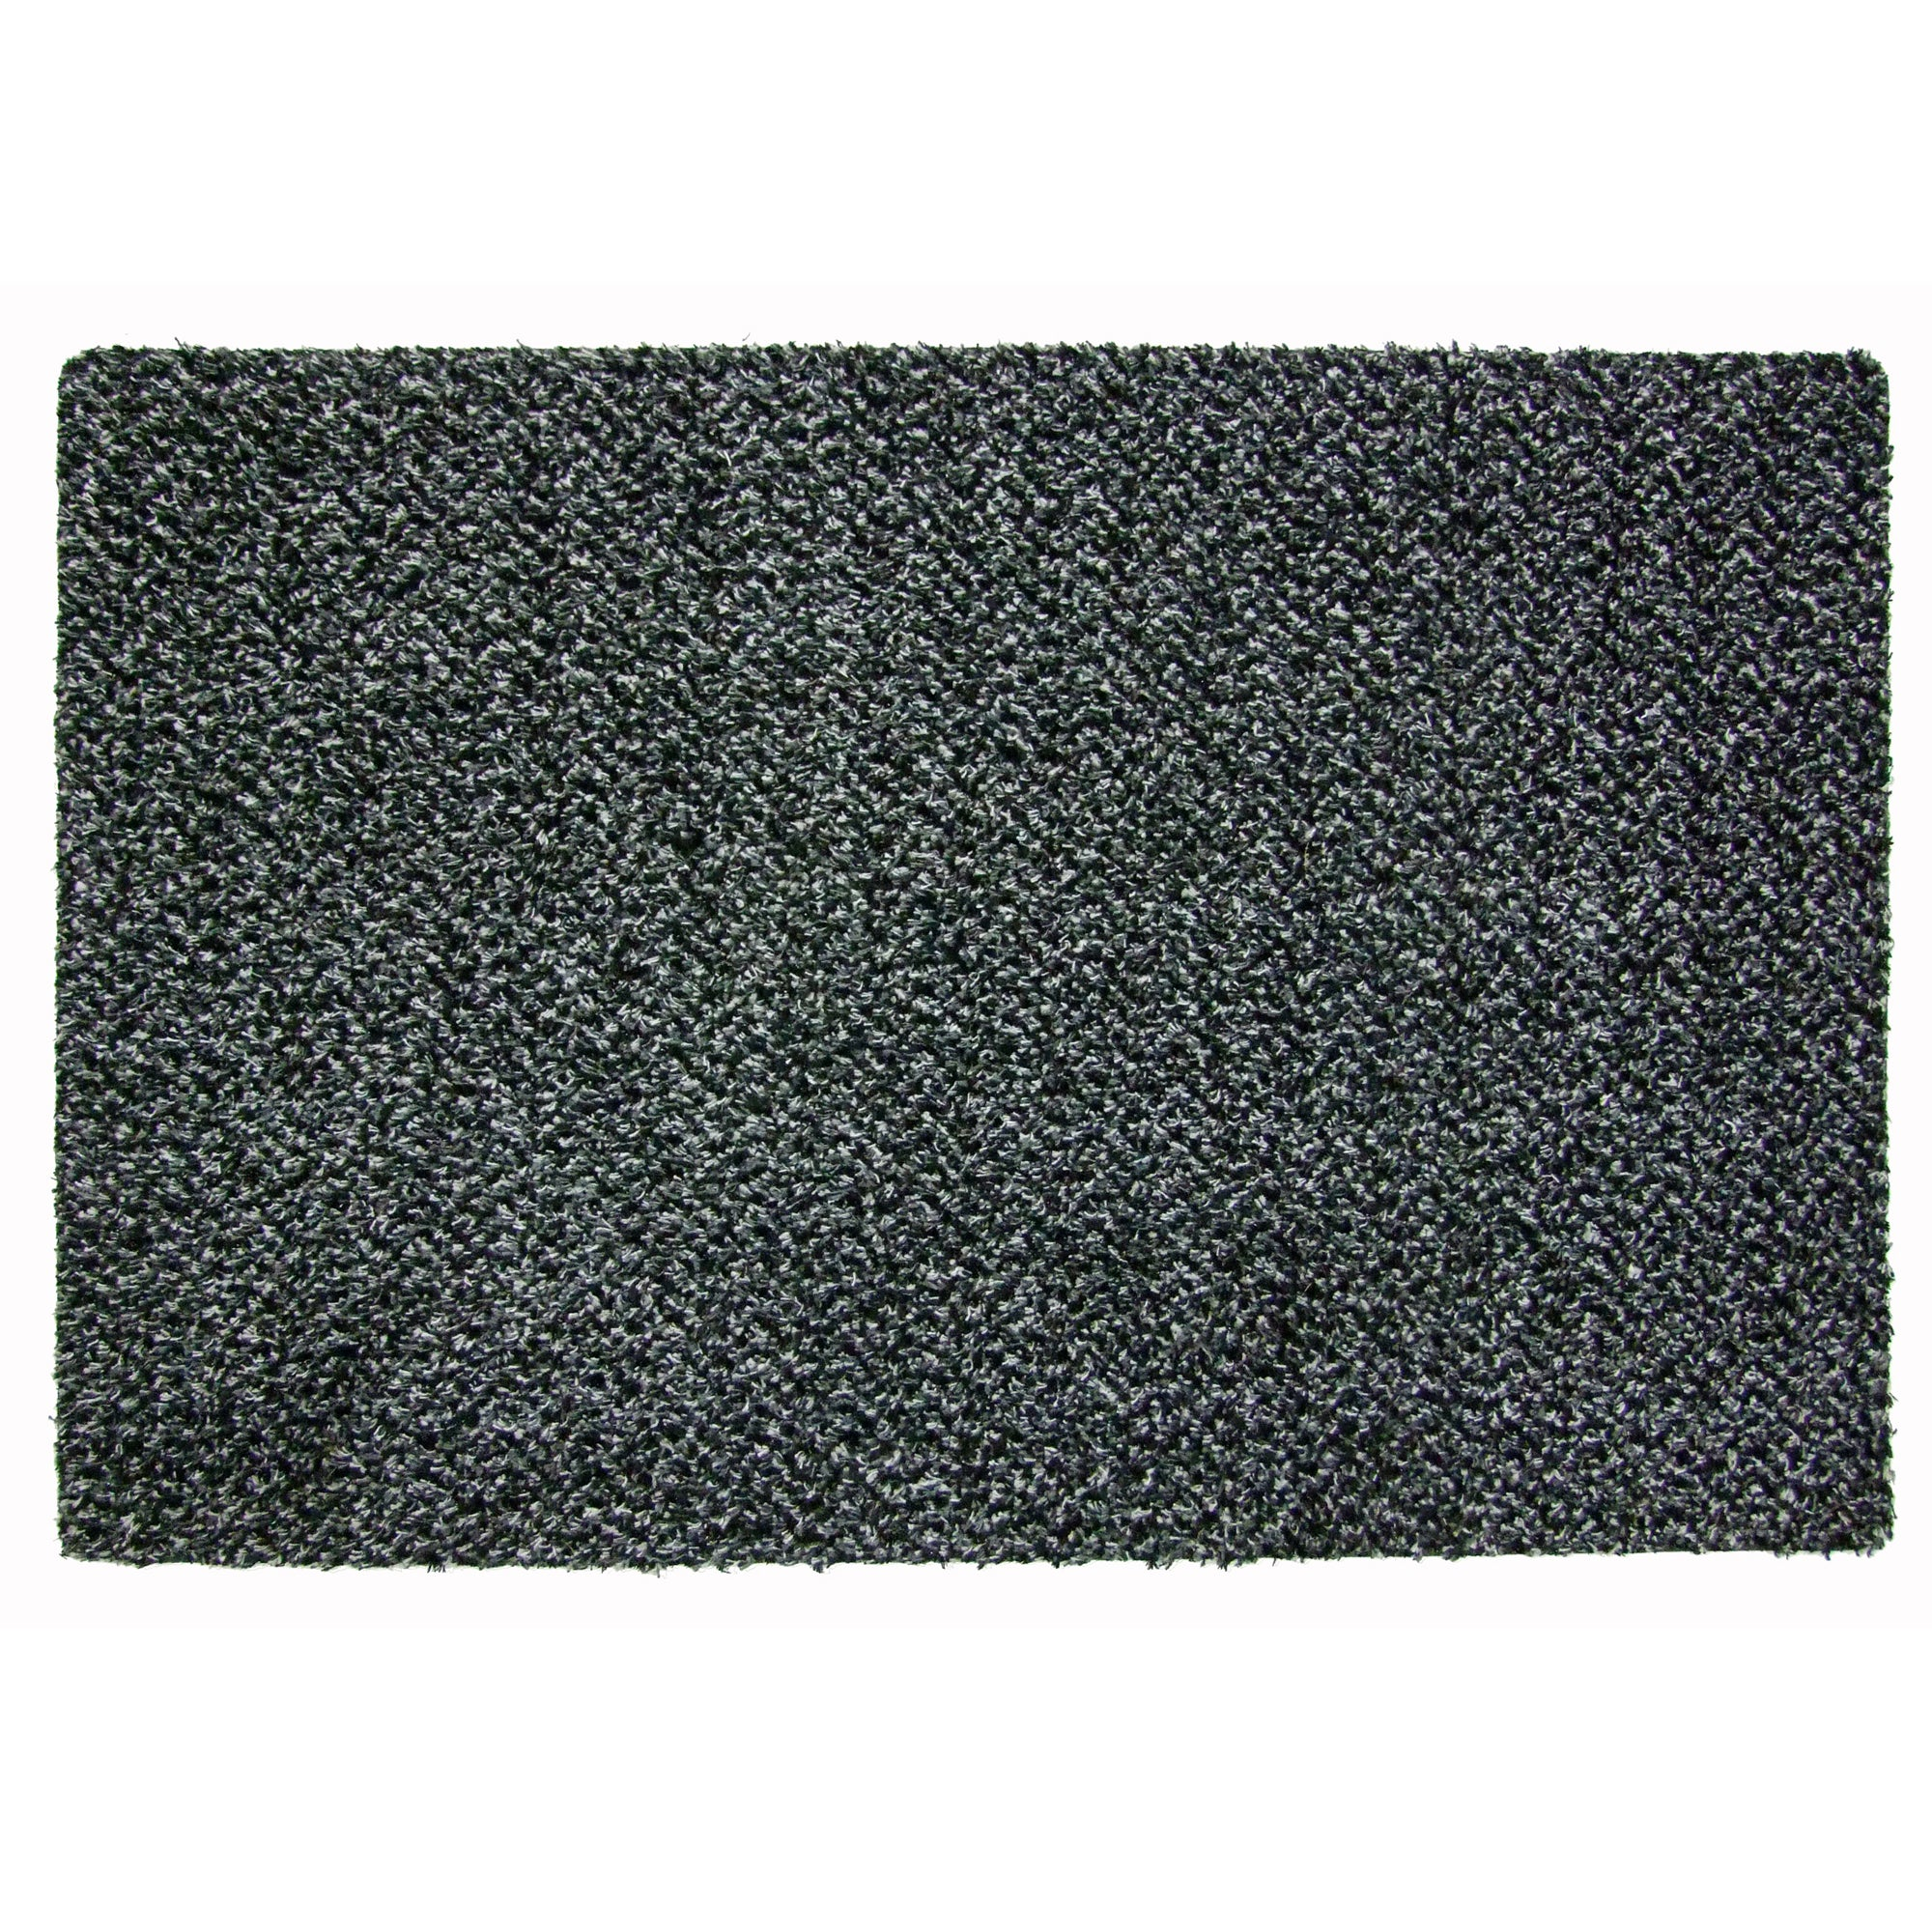 Black Mighty Scraper Mat